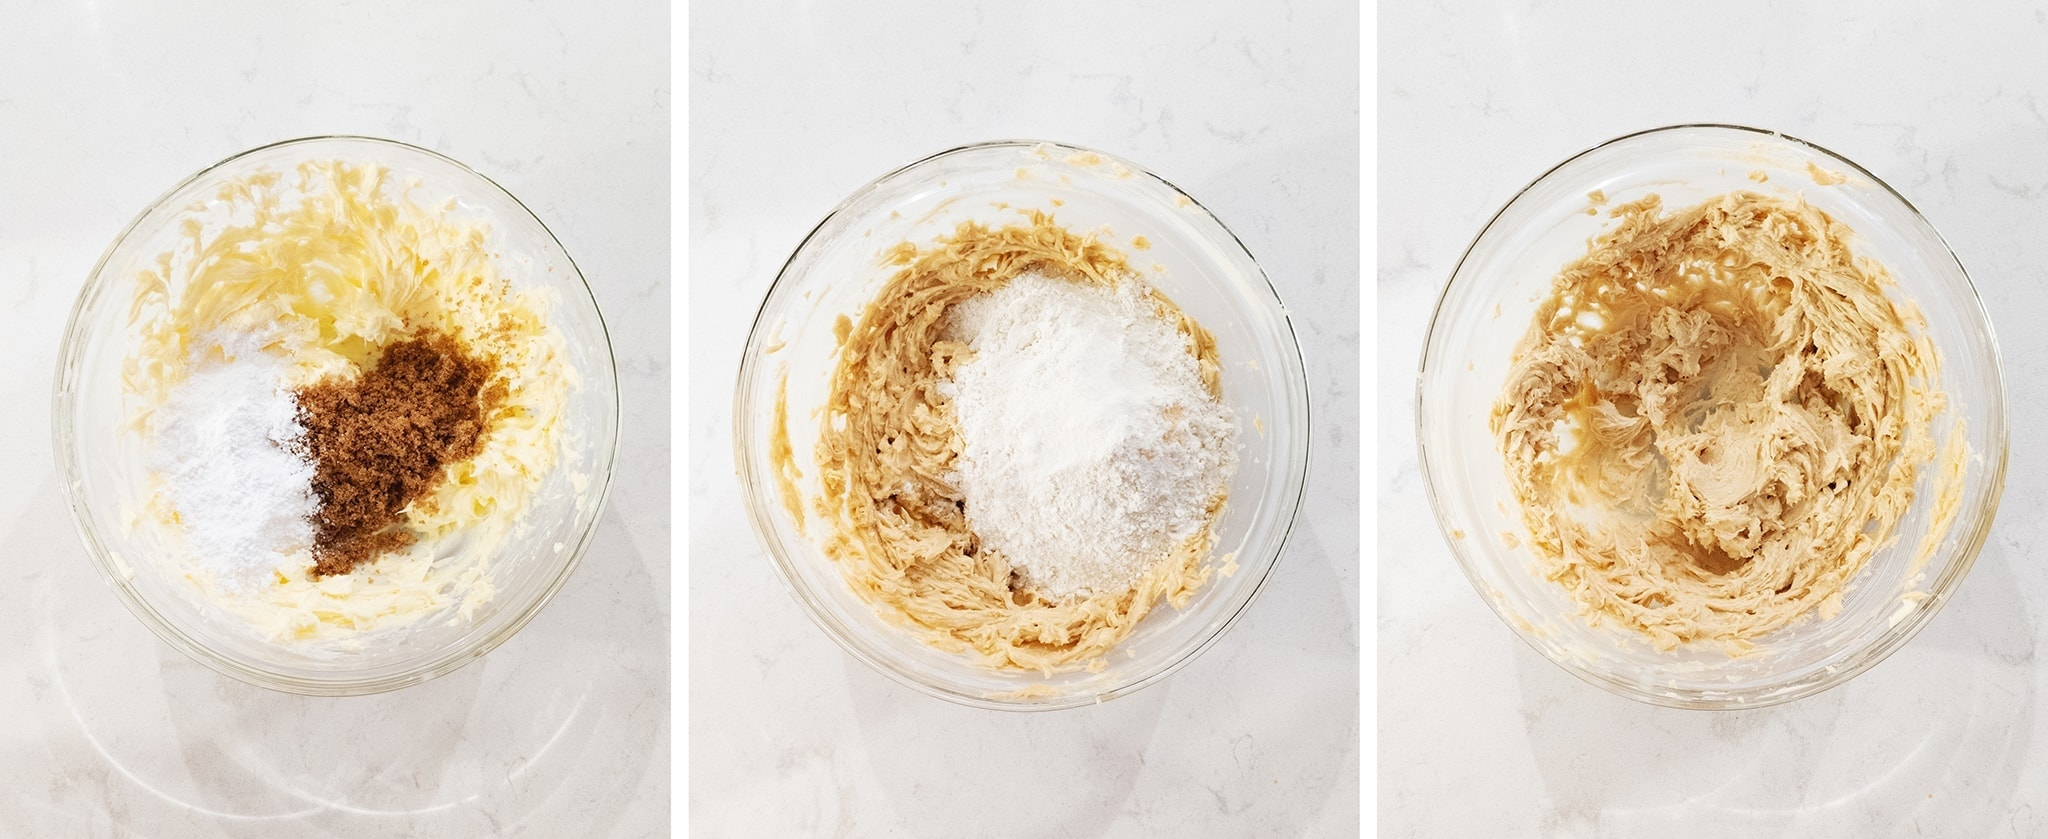 Mixing flour and sugar into butter in a mixing bowl